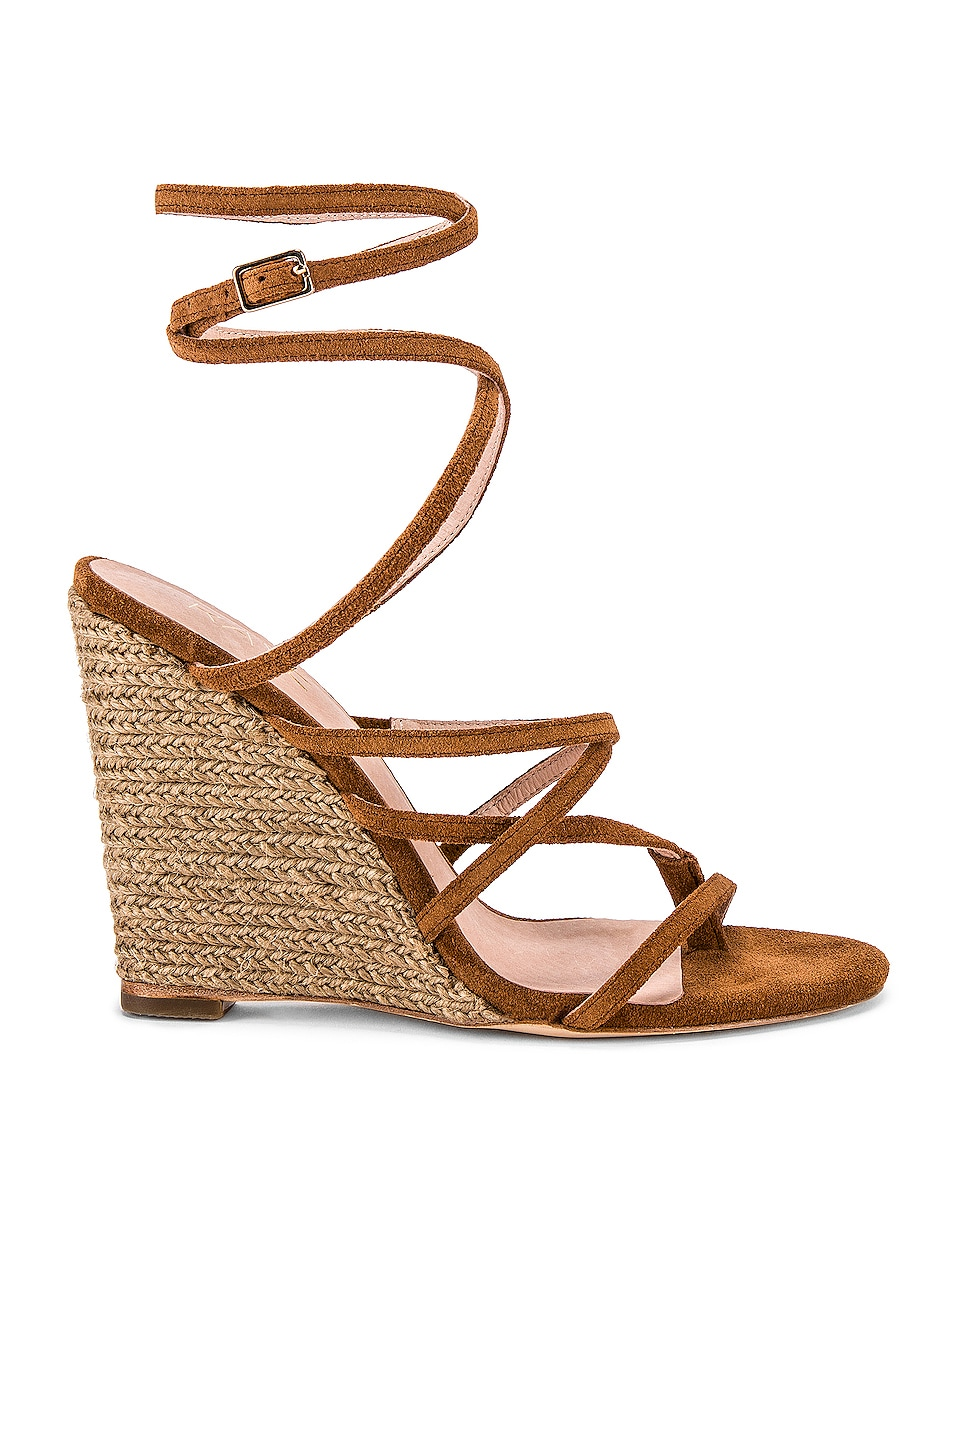 RAYE Acapulco Wedge in Cognac